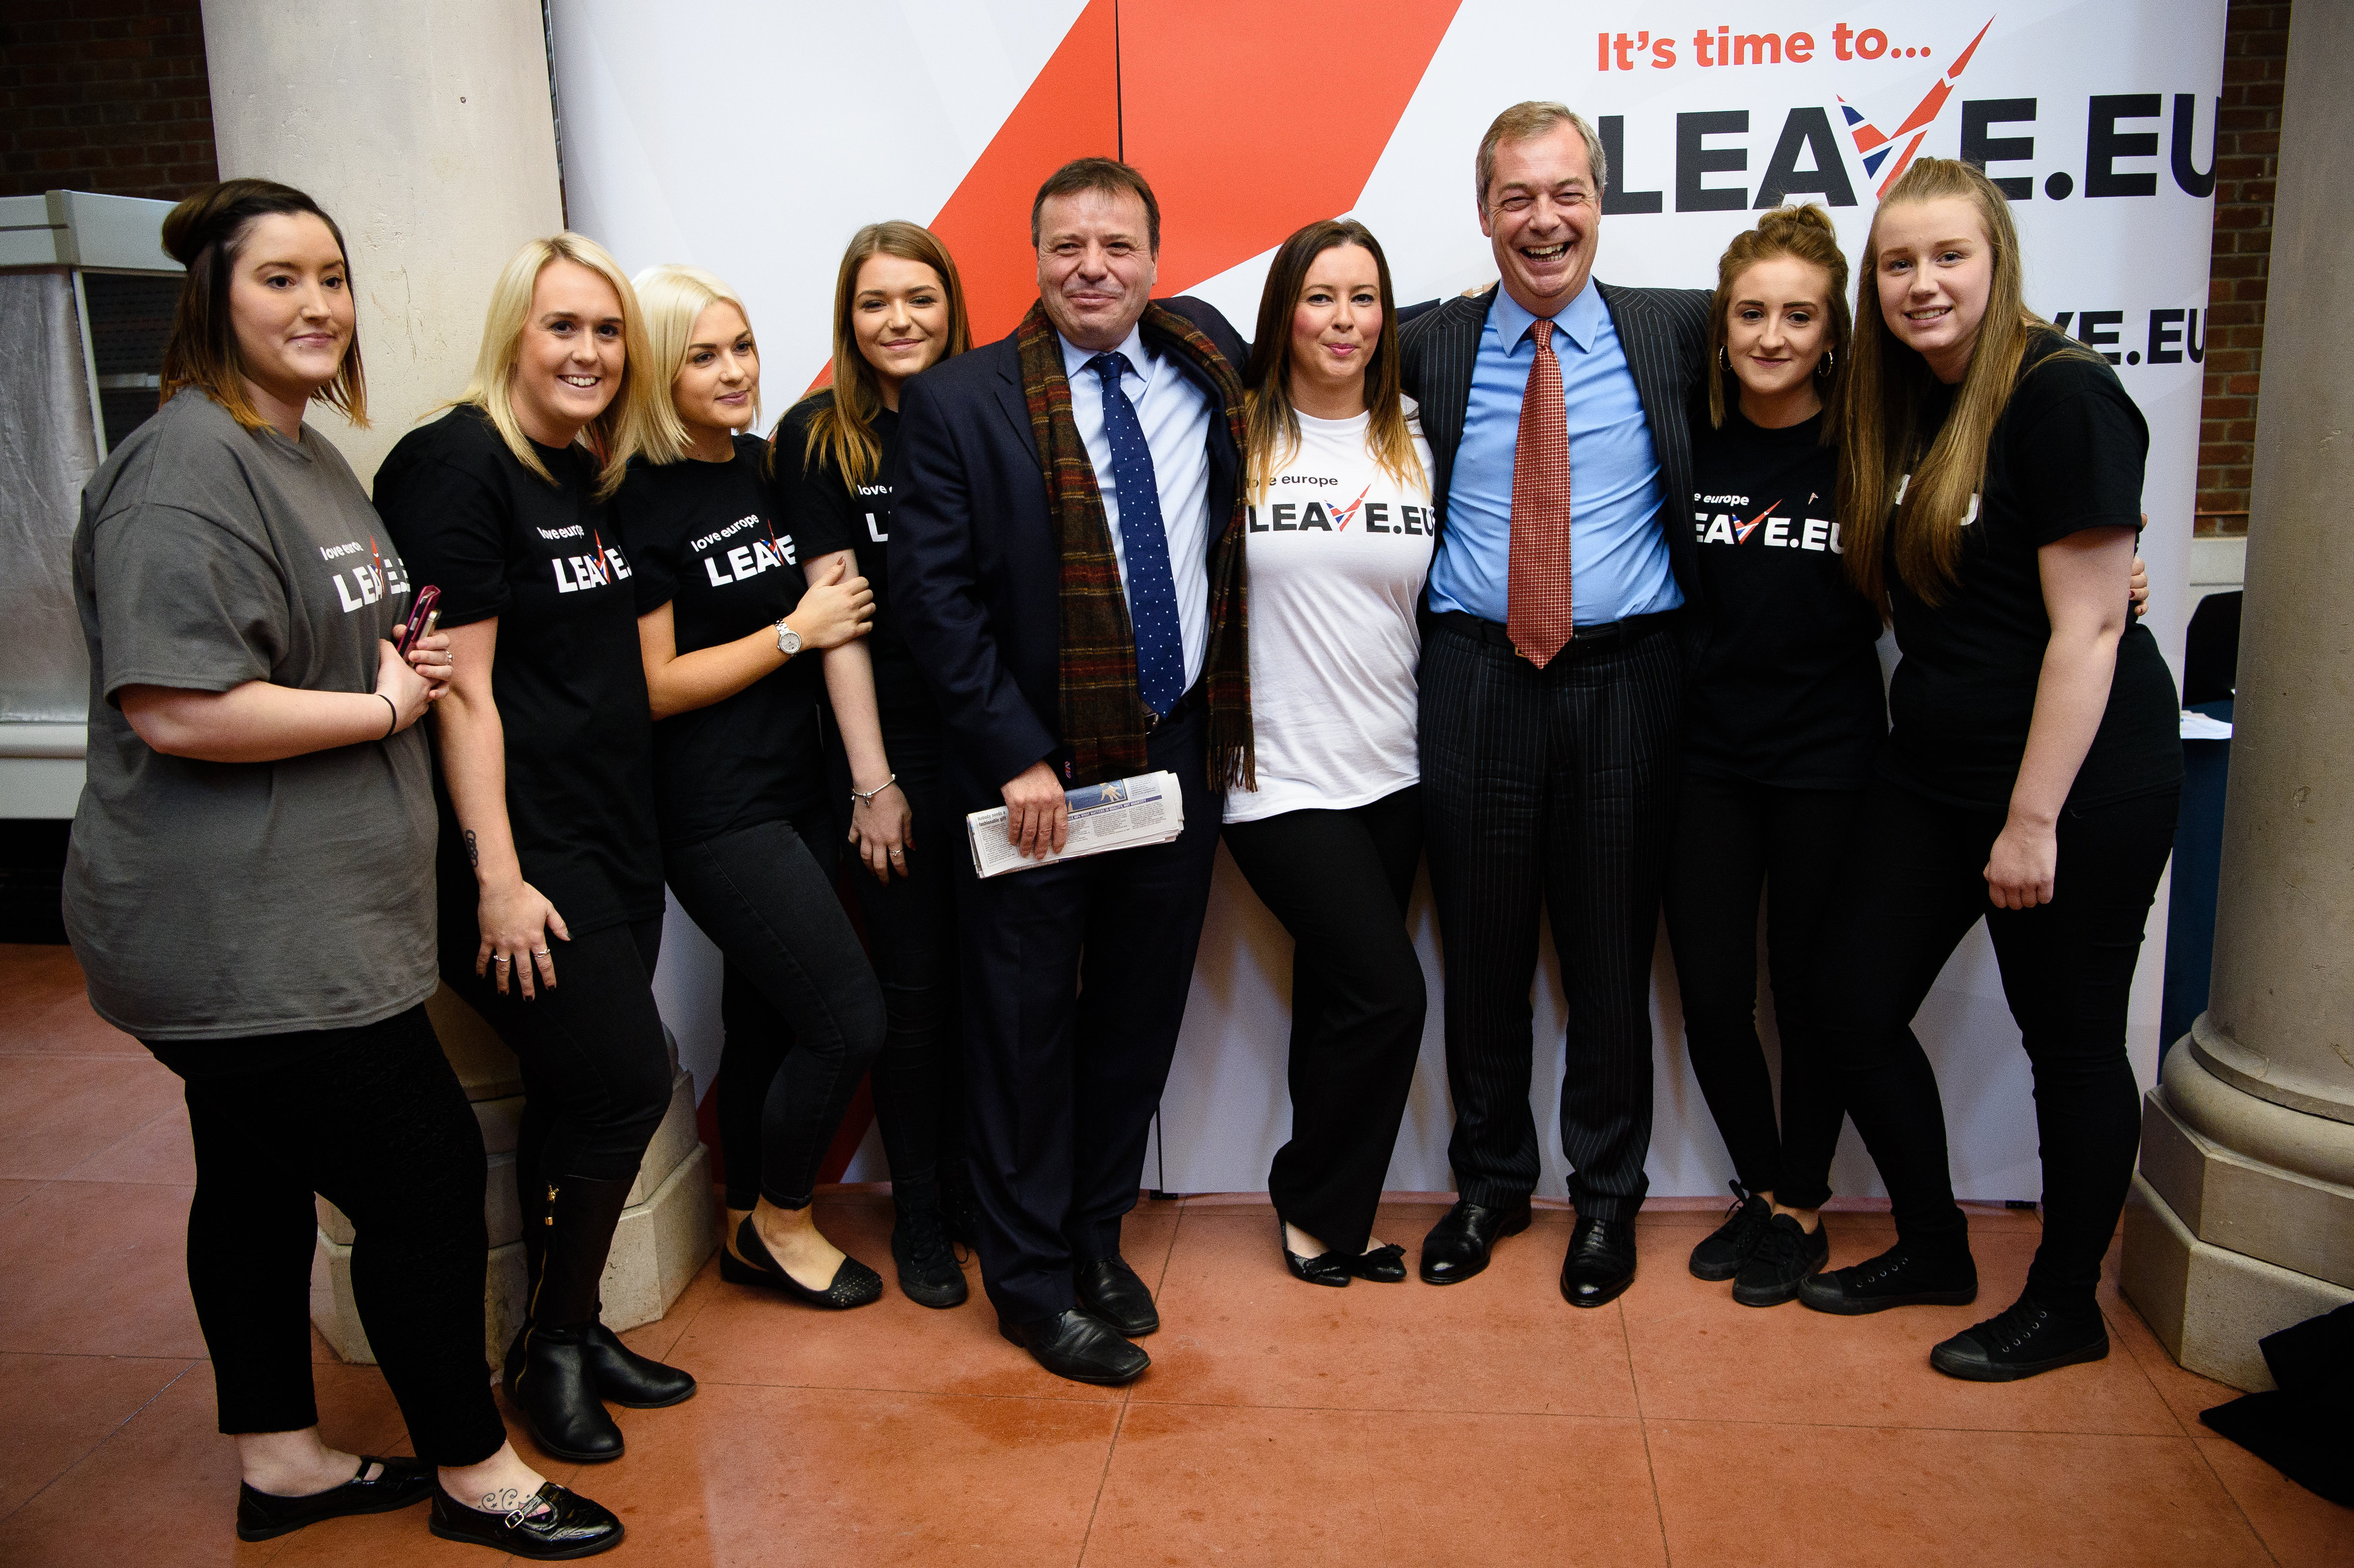 British businessman Arron Banks (C) and UKIP leader Nigel Farage (3R) pose with volunteers after a press briefing by the Leave.EU campaign group in central London on November 18, 2015